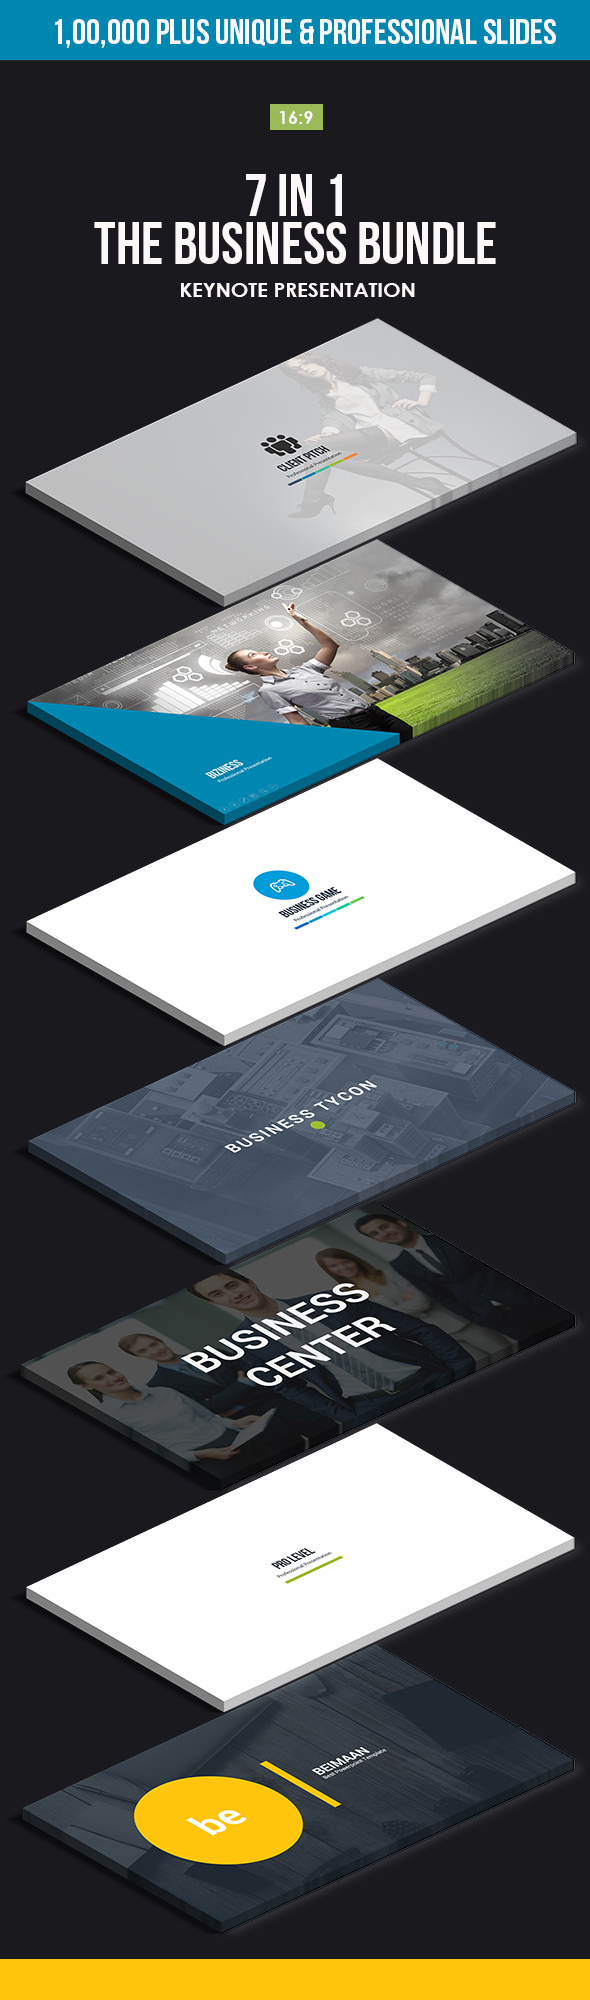 7 in 1 Keynote - The Business Bundle - Business Keynote Templates